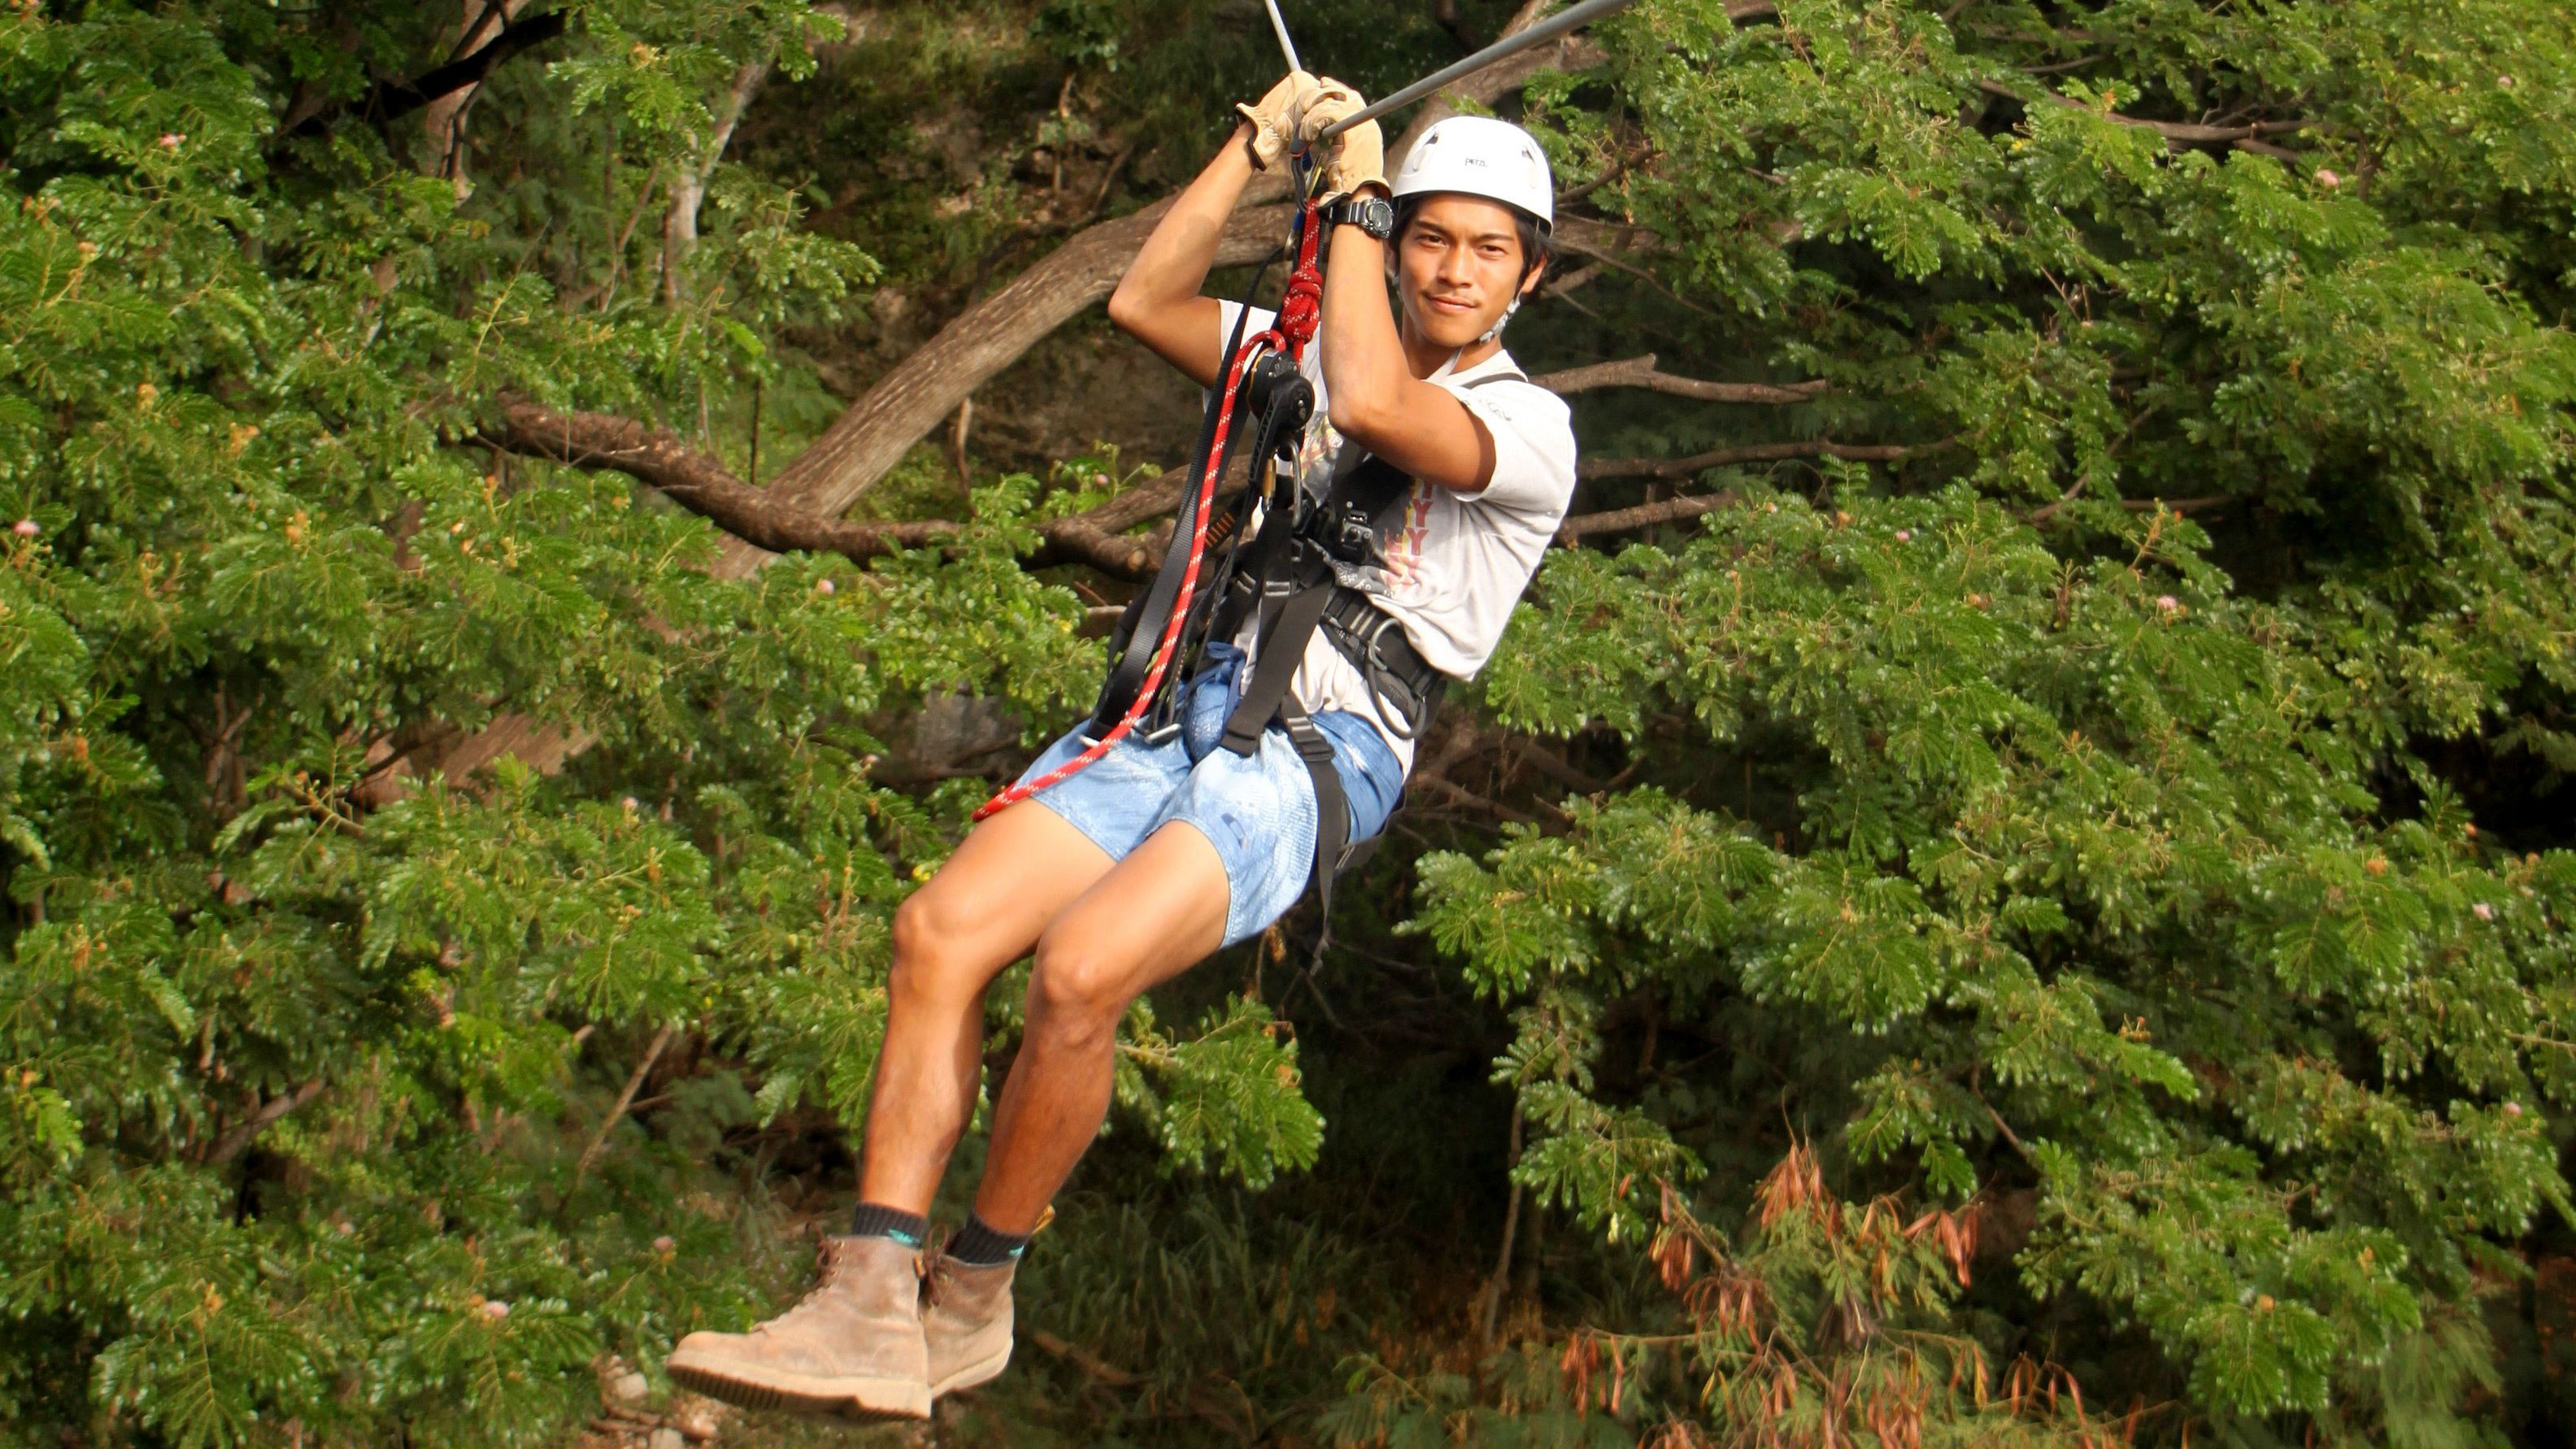 Zipline & Buggy Package at Coral Center Adventure Park